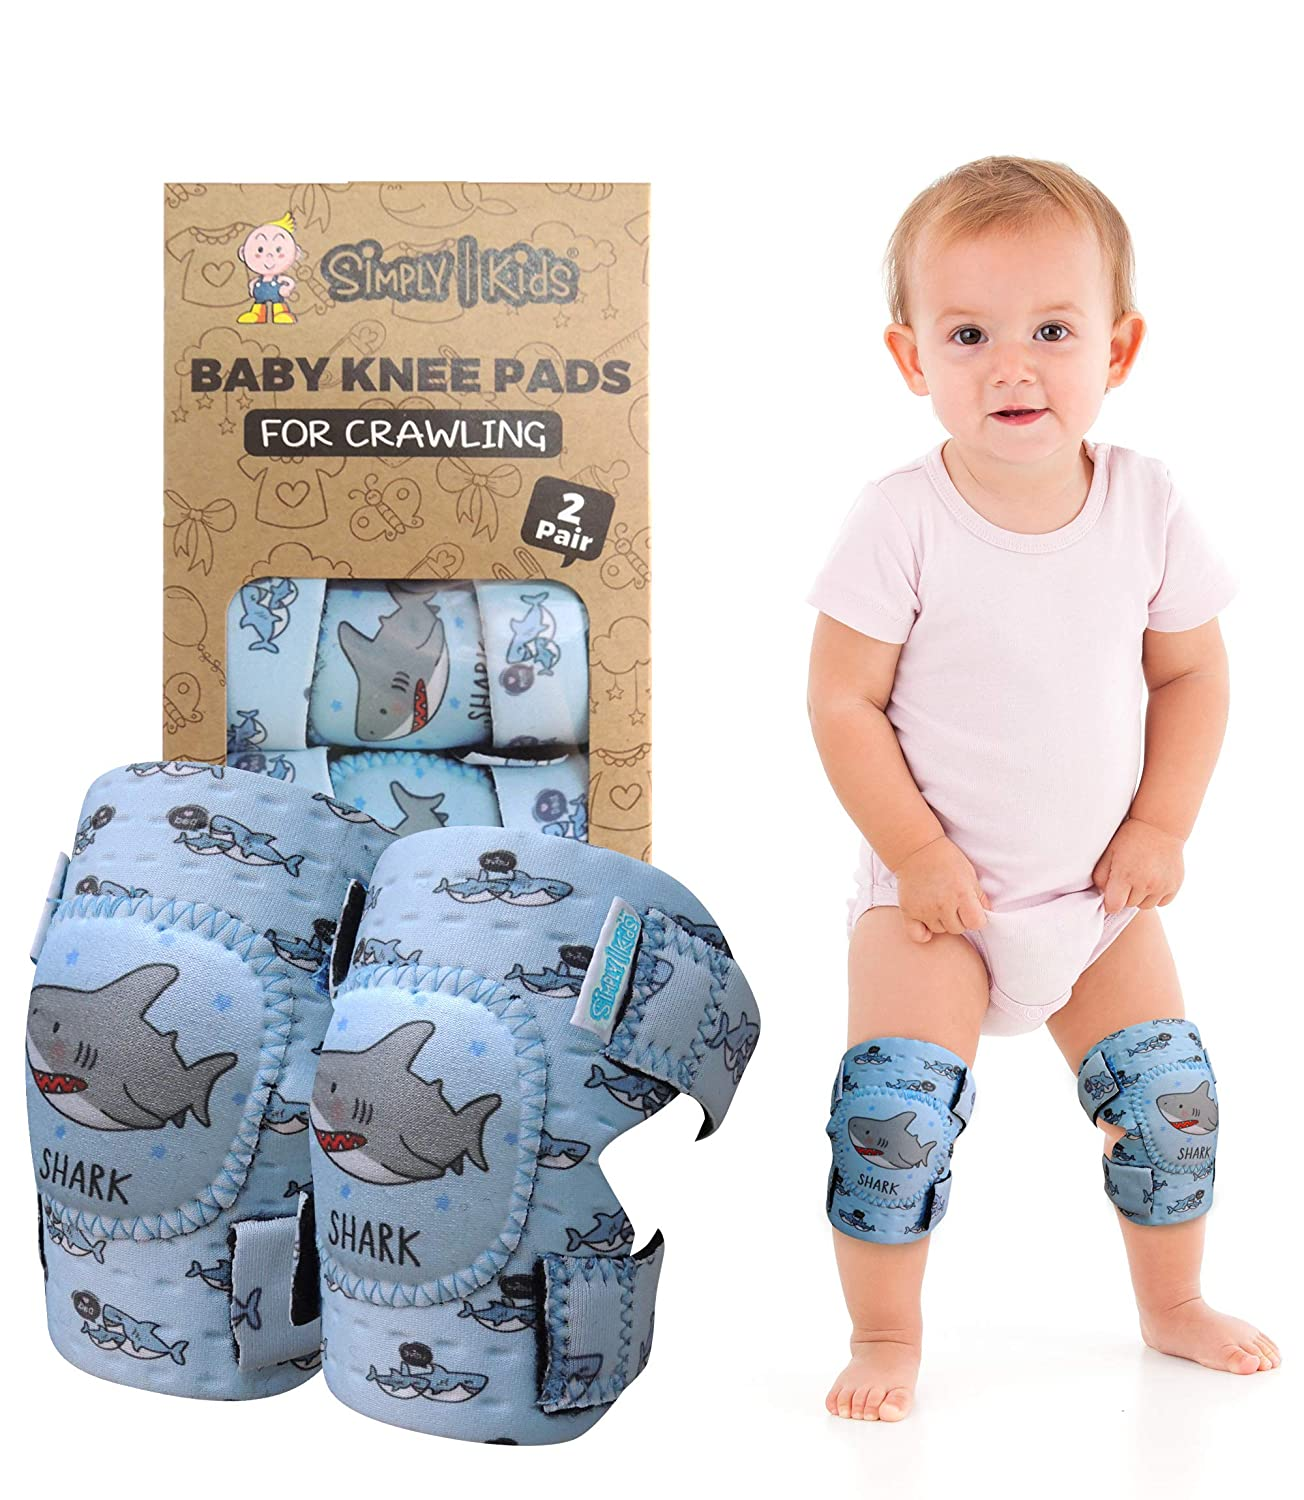 4 Pairs Baby Knee Pads for Crawling Cute Adjustable Breathable Infant Toddler Crawling Pads Anti-Slip and Protect Infants /& Toddlers Knees Safety Protector for Babies